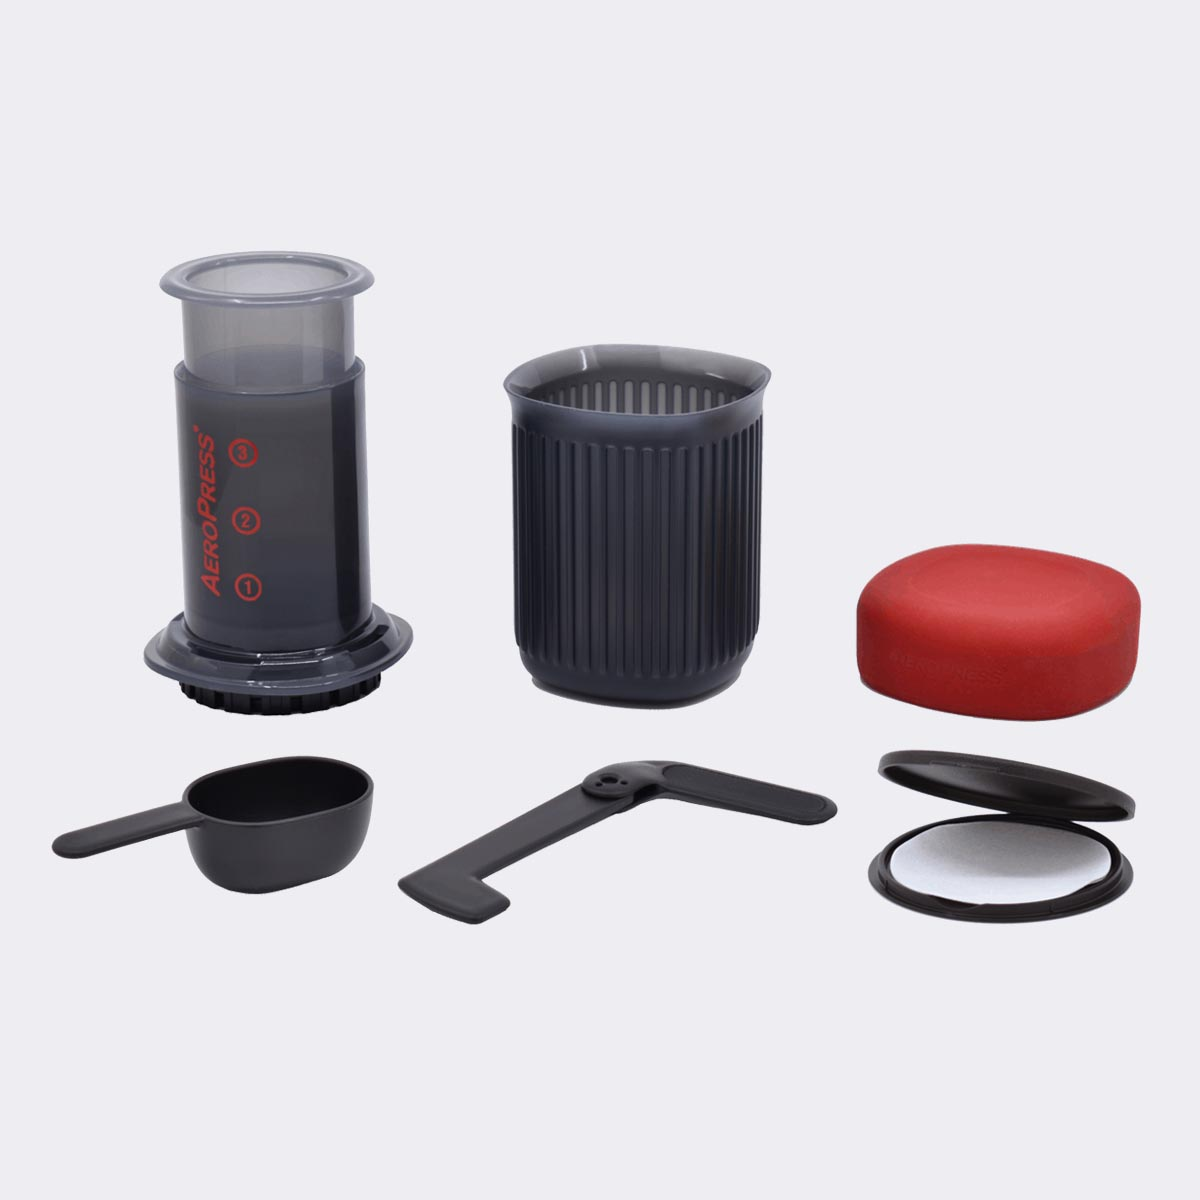 Aeropress GO Travel Coffee Press Kit